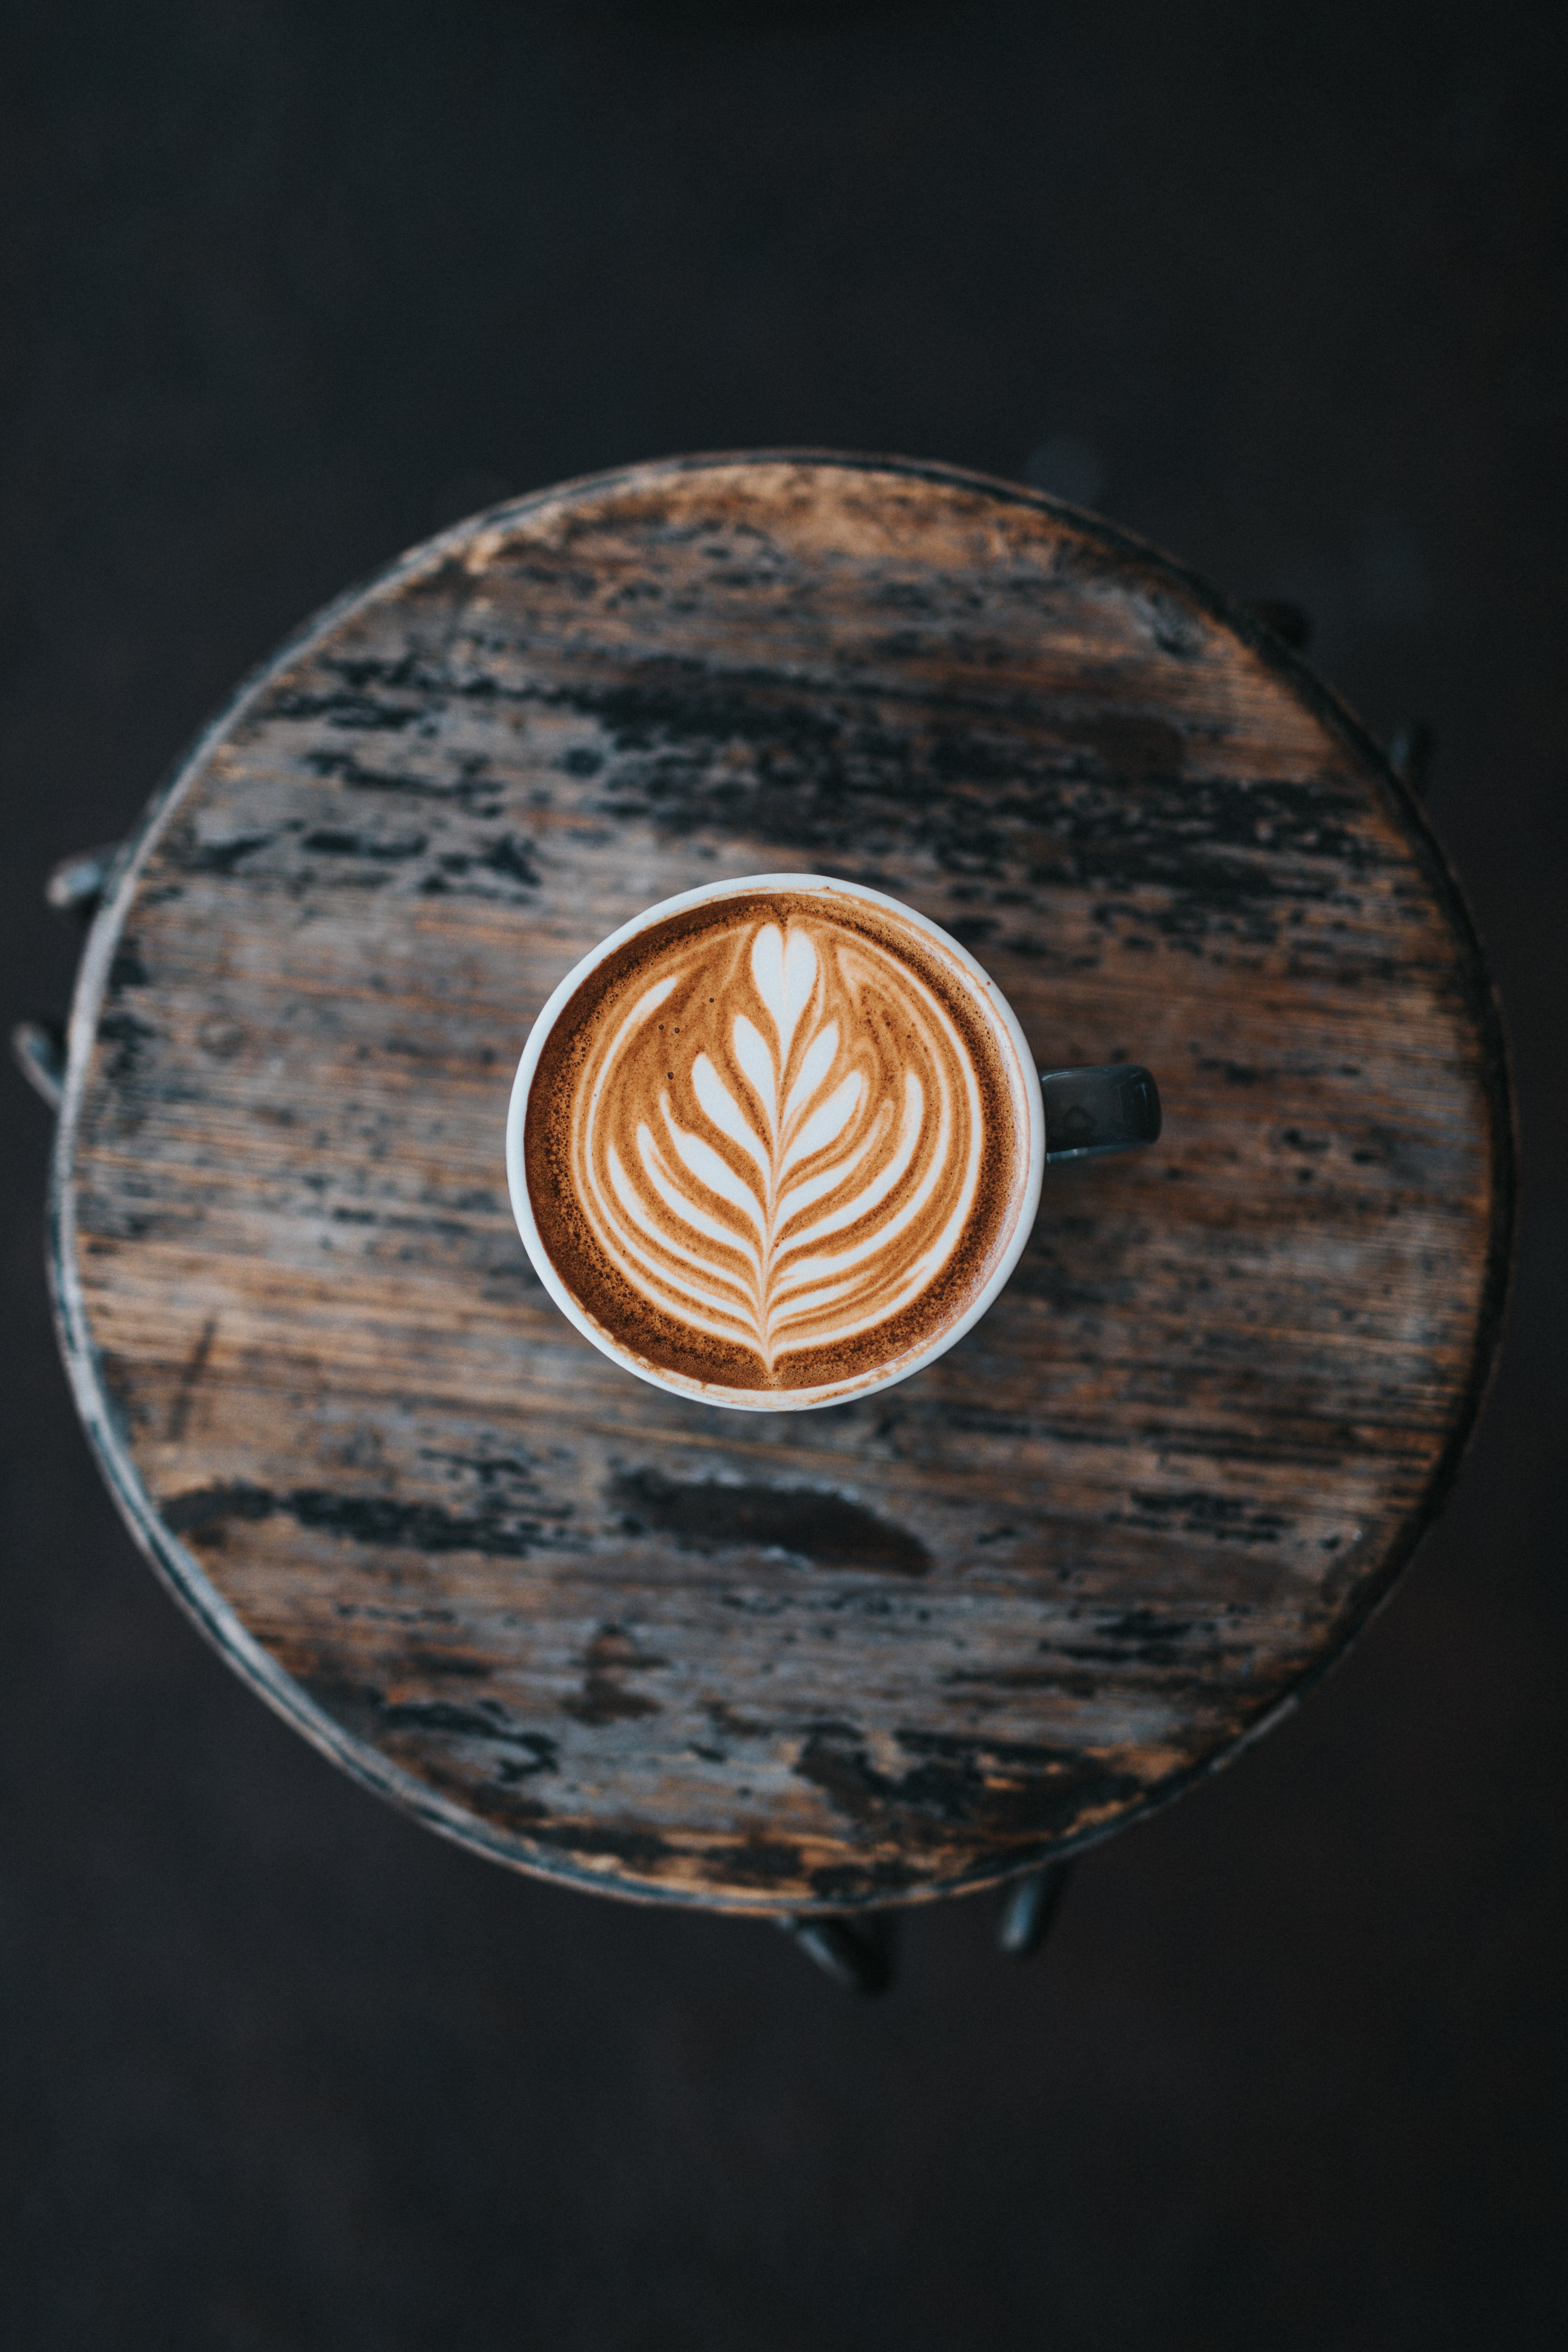 Coffee latte art viewed from above in a cup on the wooden table at Two Guns Espresso